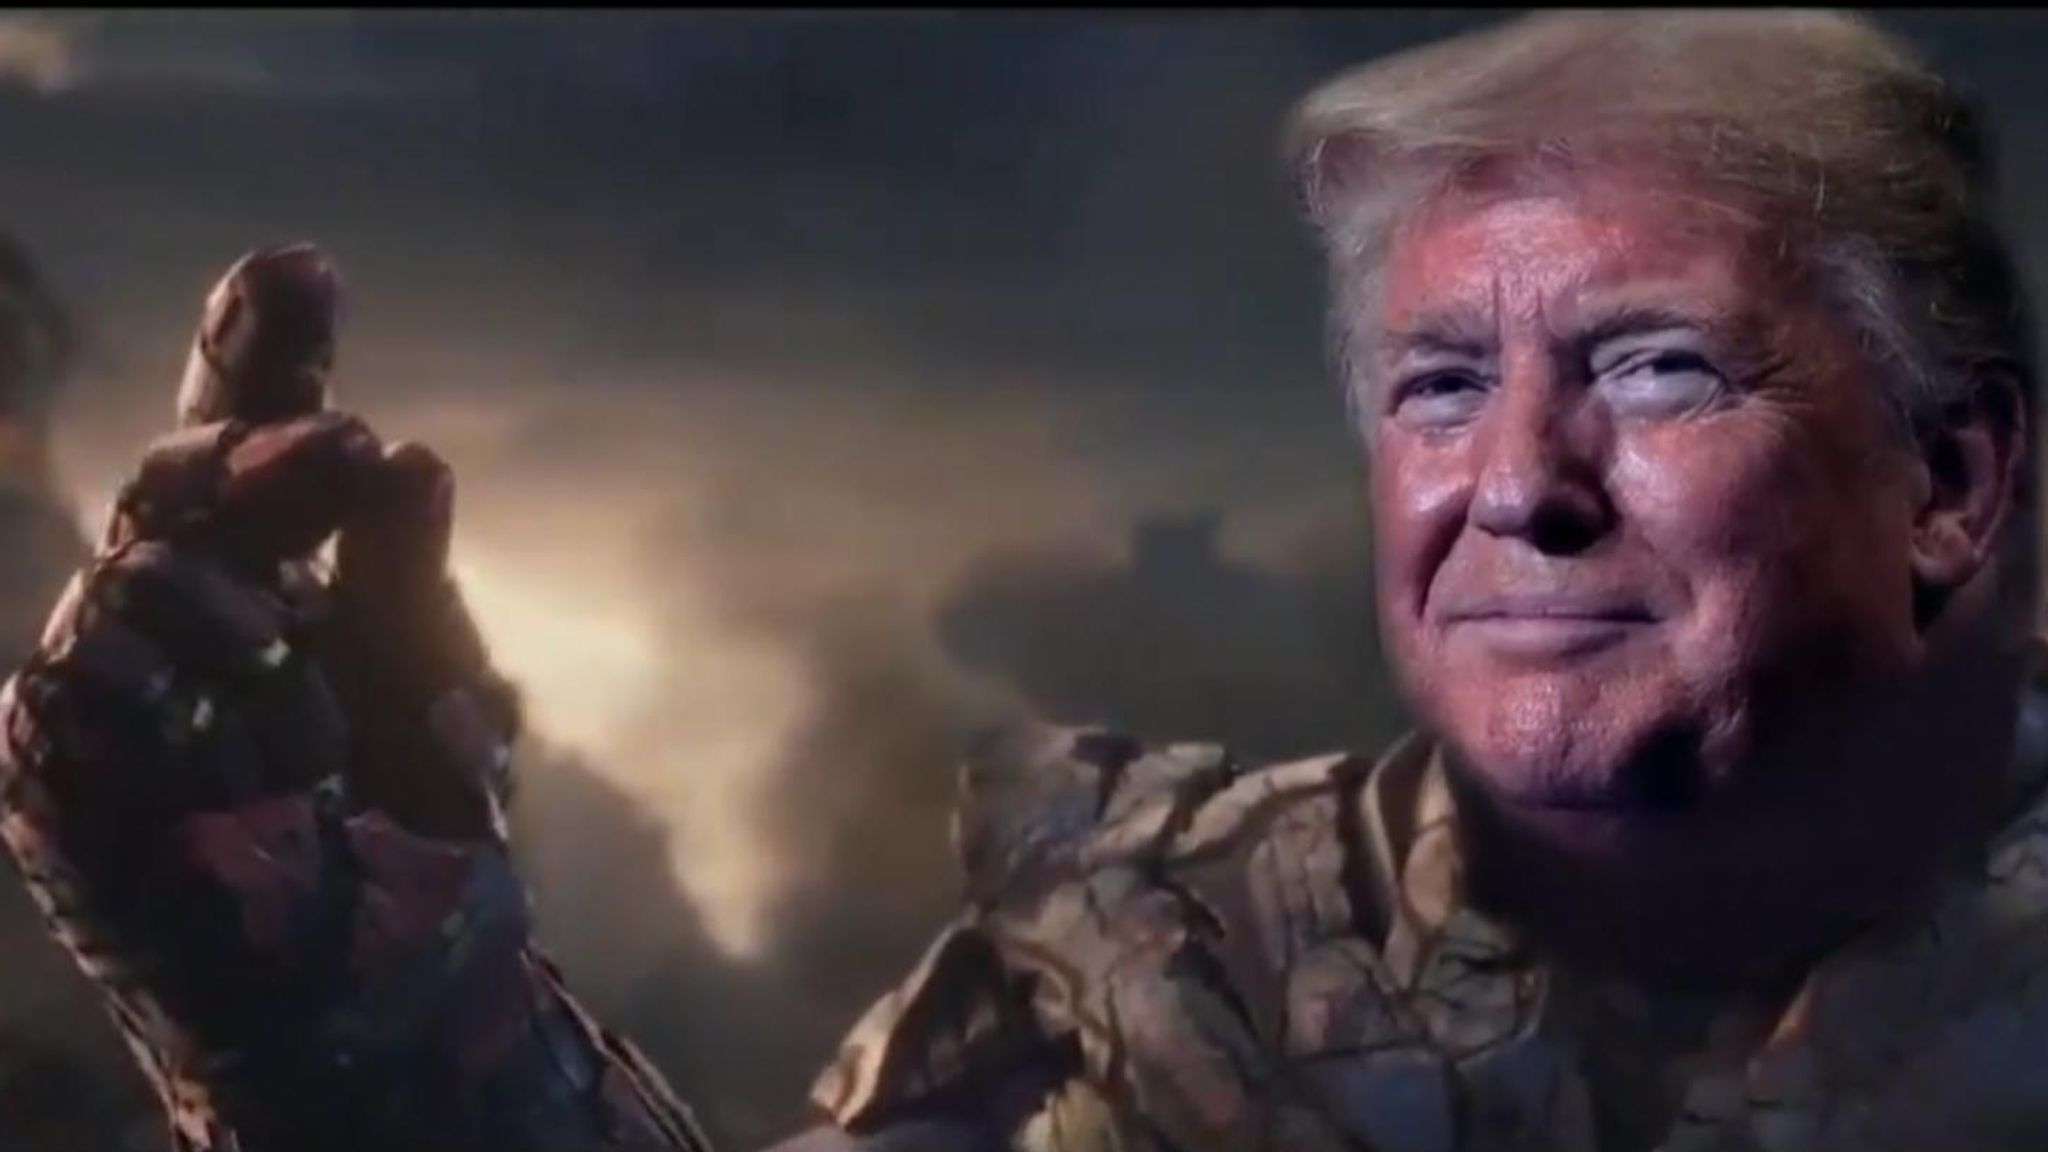 Trump campaign portrays president as Marvel supervillain Thanos in impeachment backlash